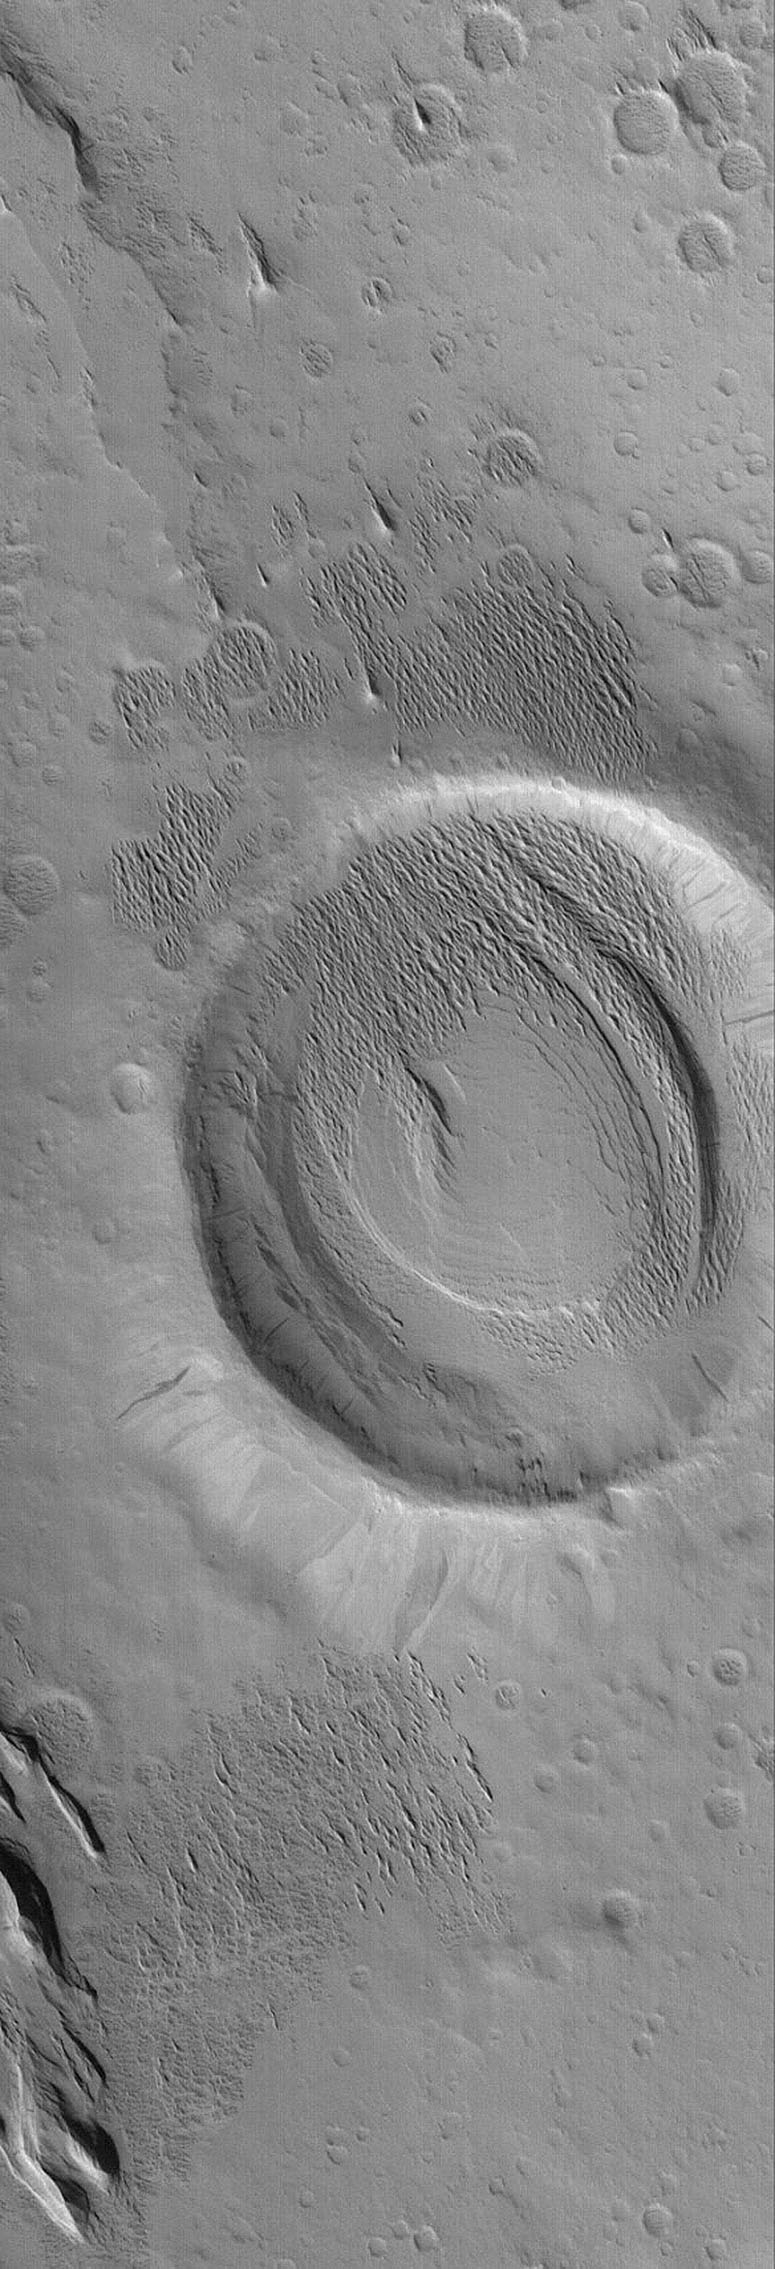 NASA's Mars Global Surveyor shows a crater and adjacent terrain that have been exhumed from beneath a wind-eroded material. The sharp, pointy ridges inside and immediately adjacent to the crater are evident.